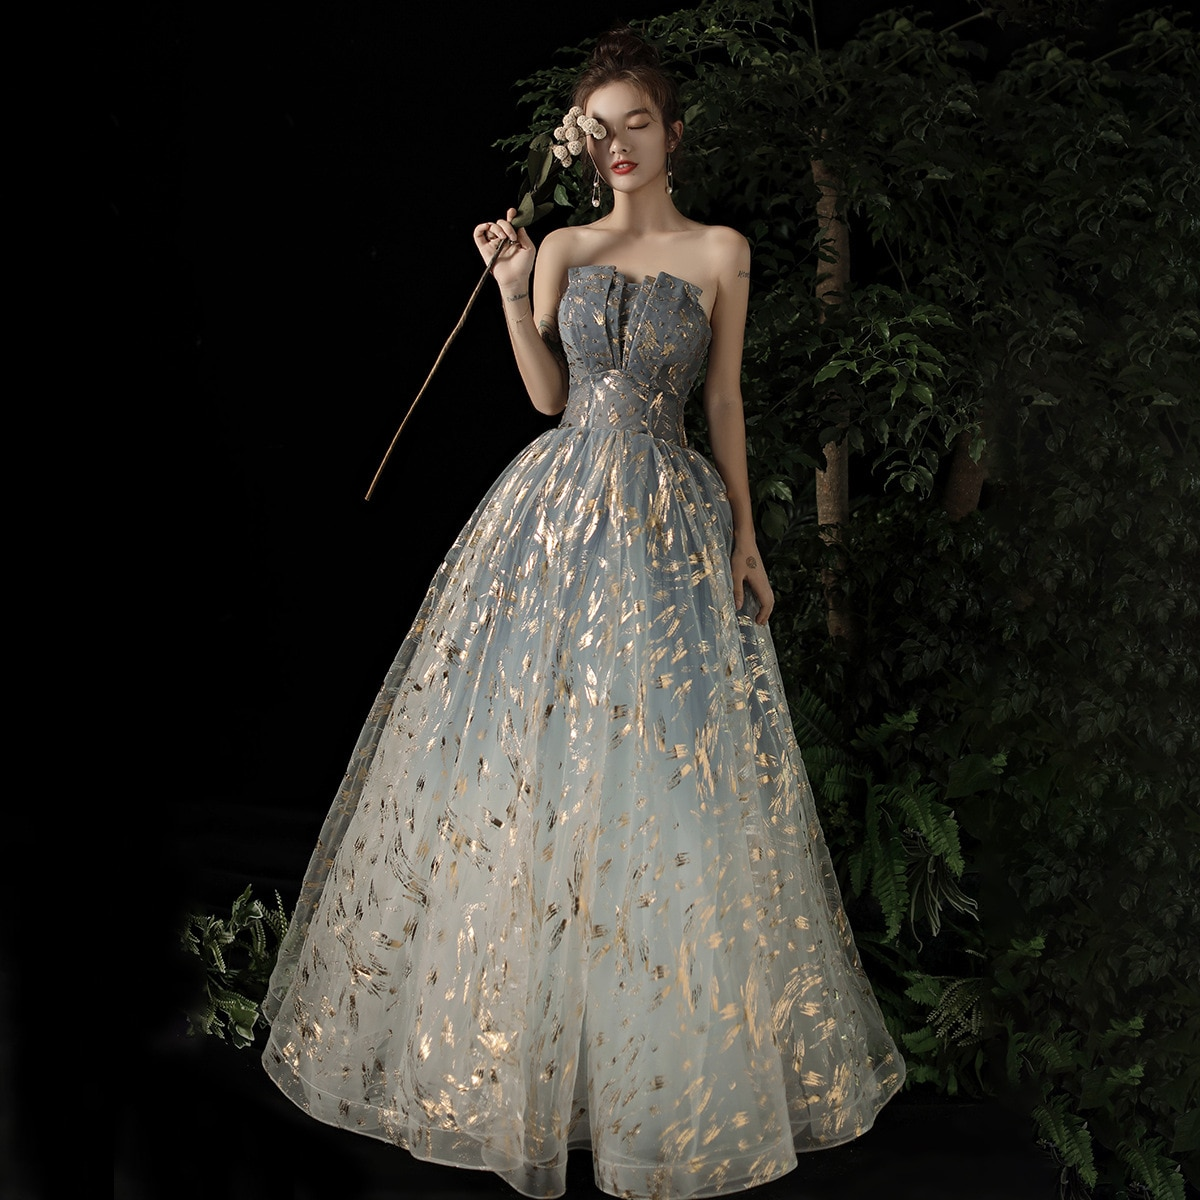 2020 New Banquet Fashion Elegant Evening Dress Strapless Luxury A-line Prom Dress Sexy Backless Gold